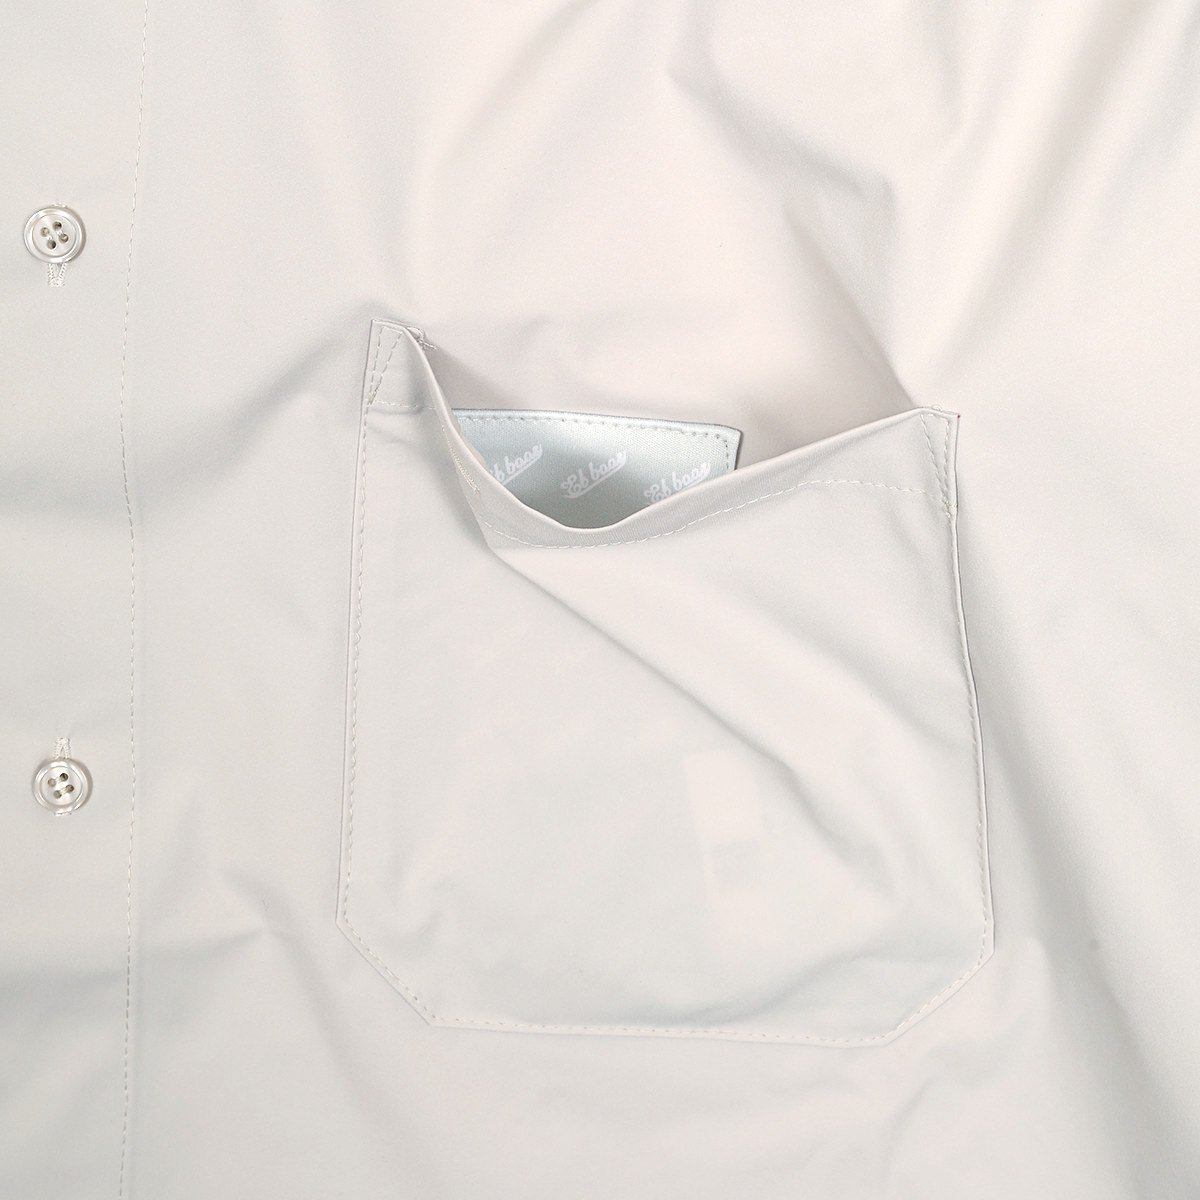 S/S Over size SHIRTS(SOLOTEX) 詳細画像19